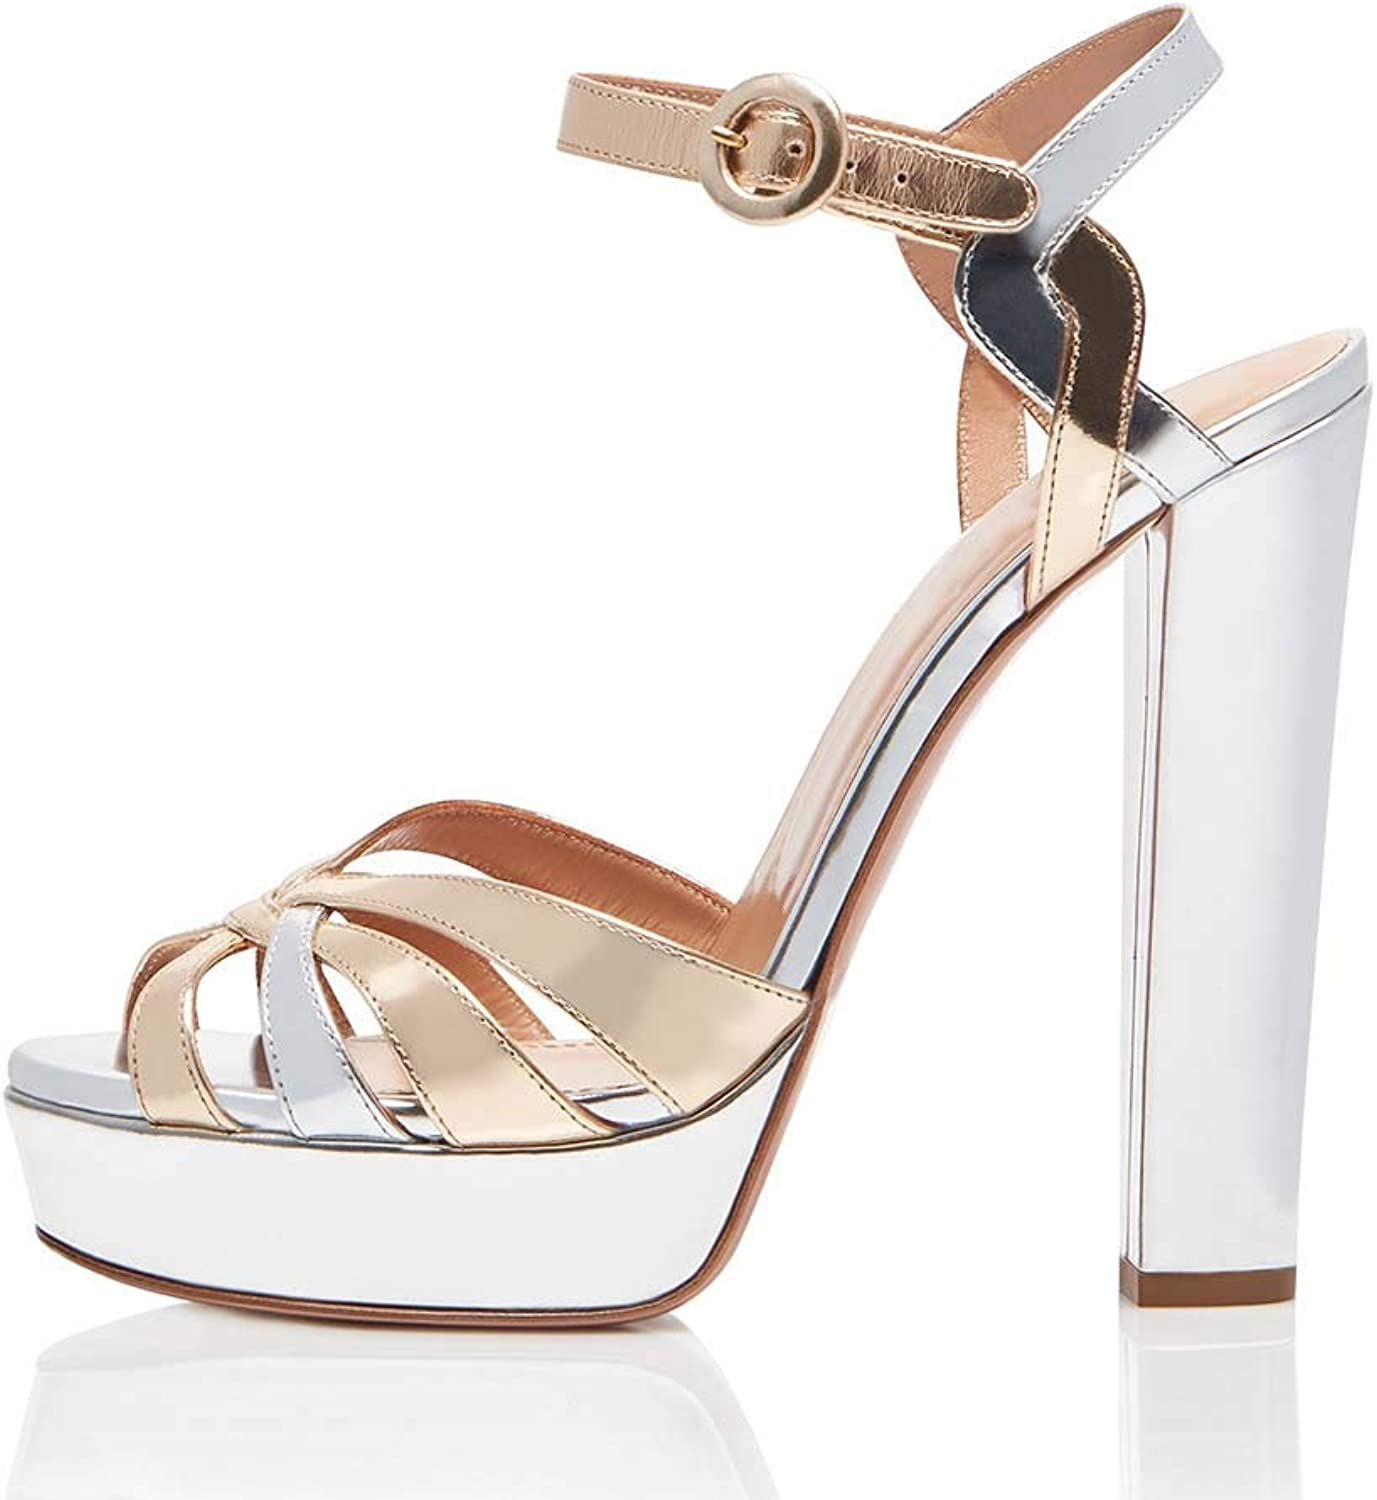 Women's Platform Ankle Strap Chunky High Heel, Open Toe Strappy Buckle Formal Party Dress Sandal Pump